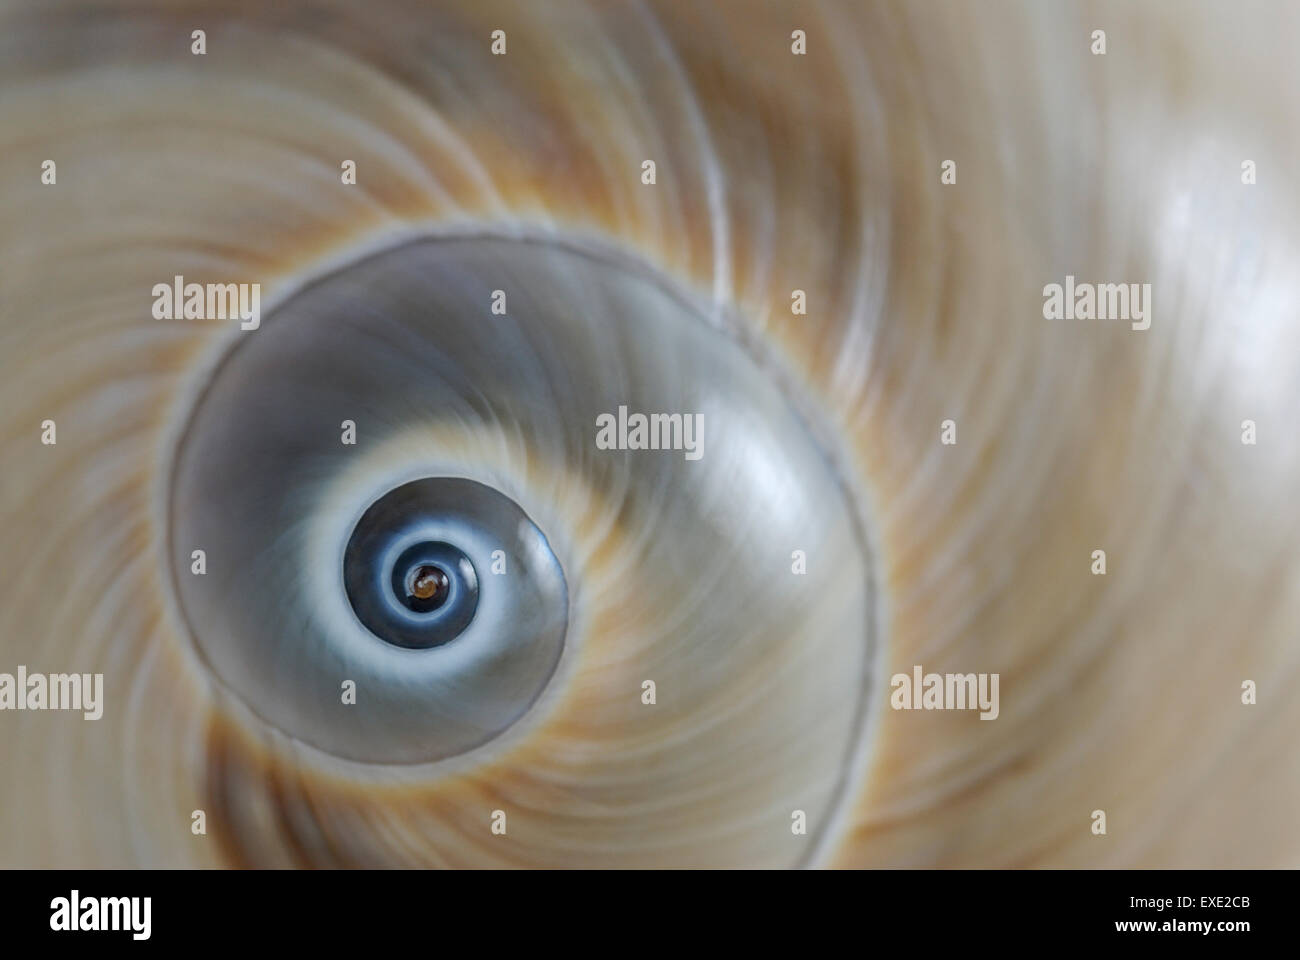 La spirale coquille d'un escargot Atlantique 'Moon' Neverita duplicata également connu sous le Photo Stock